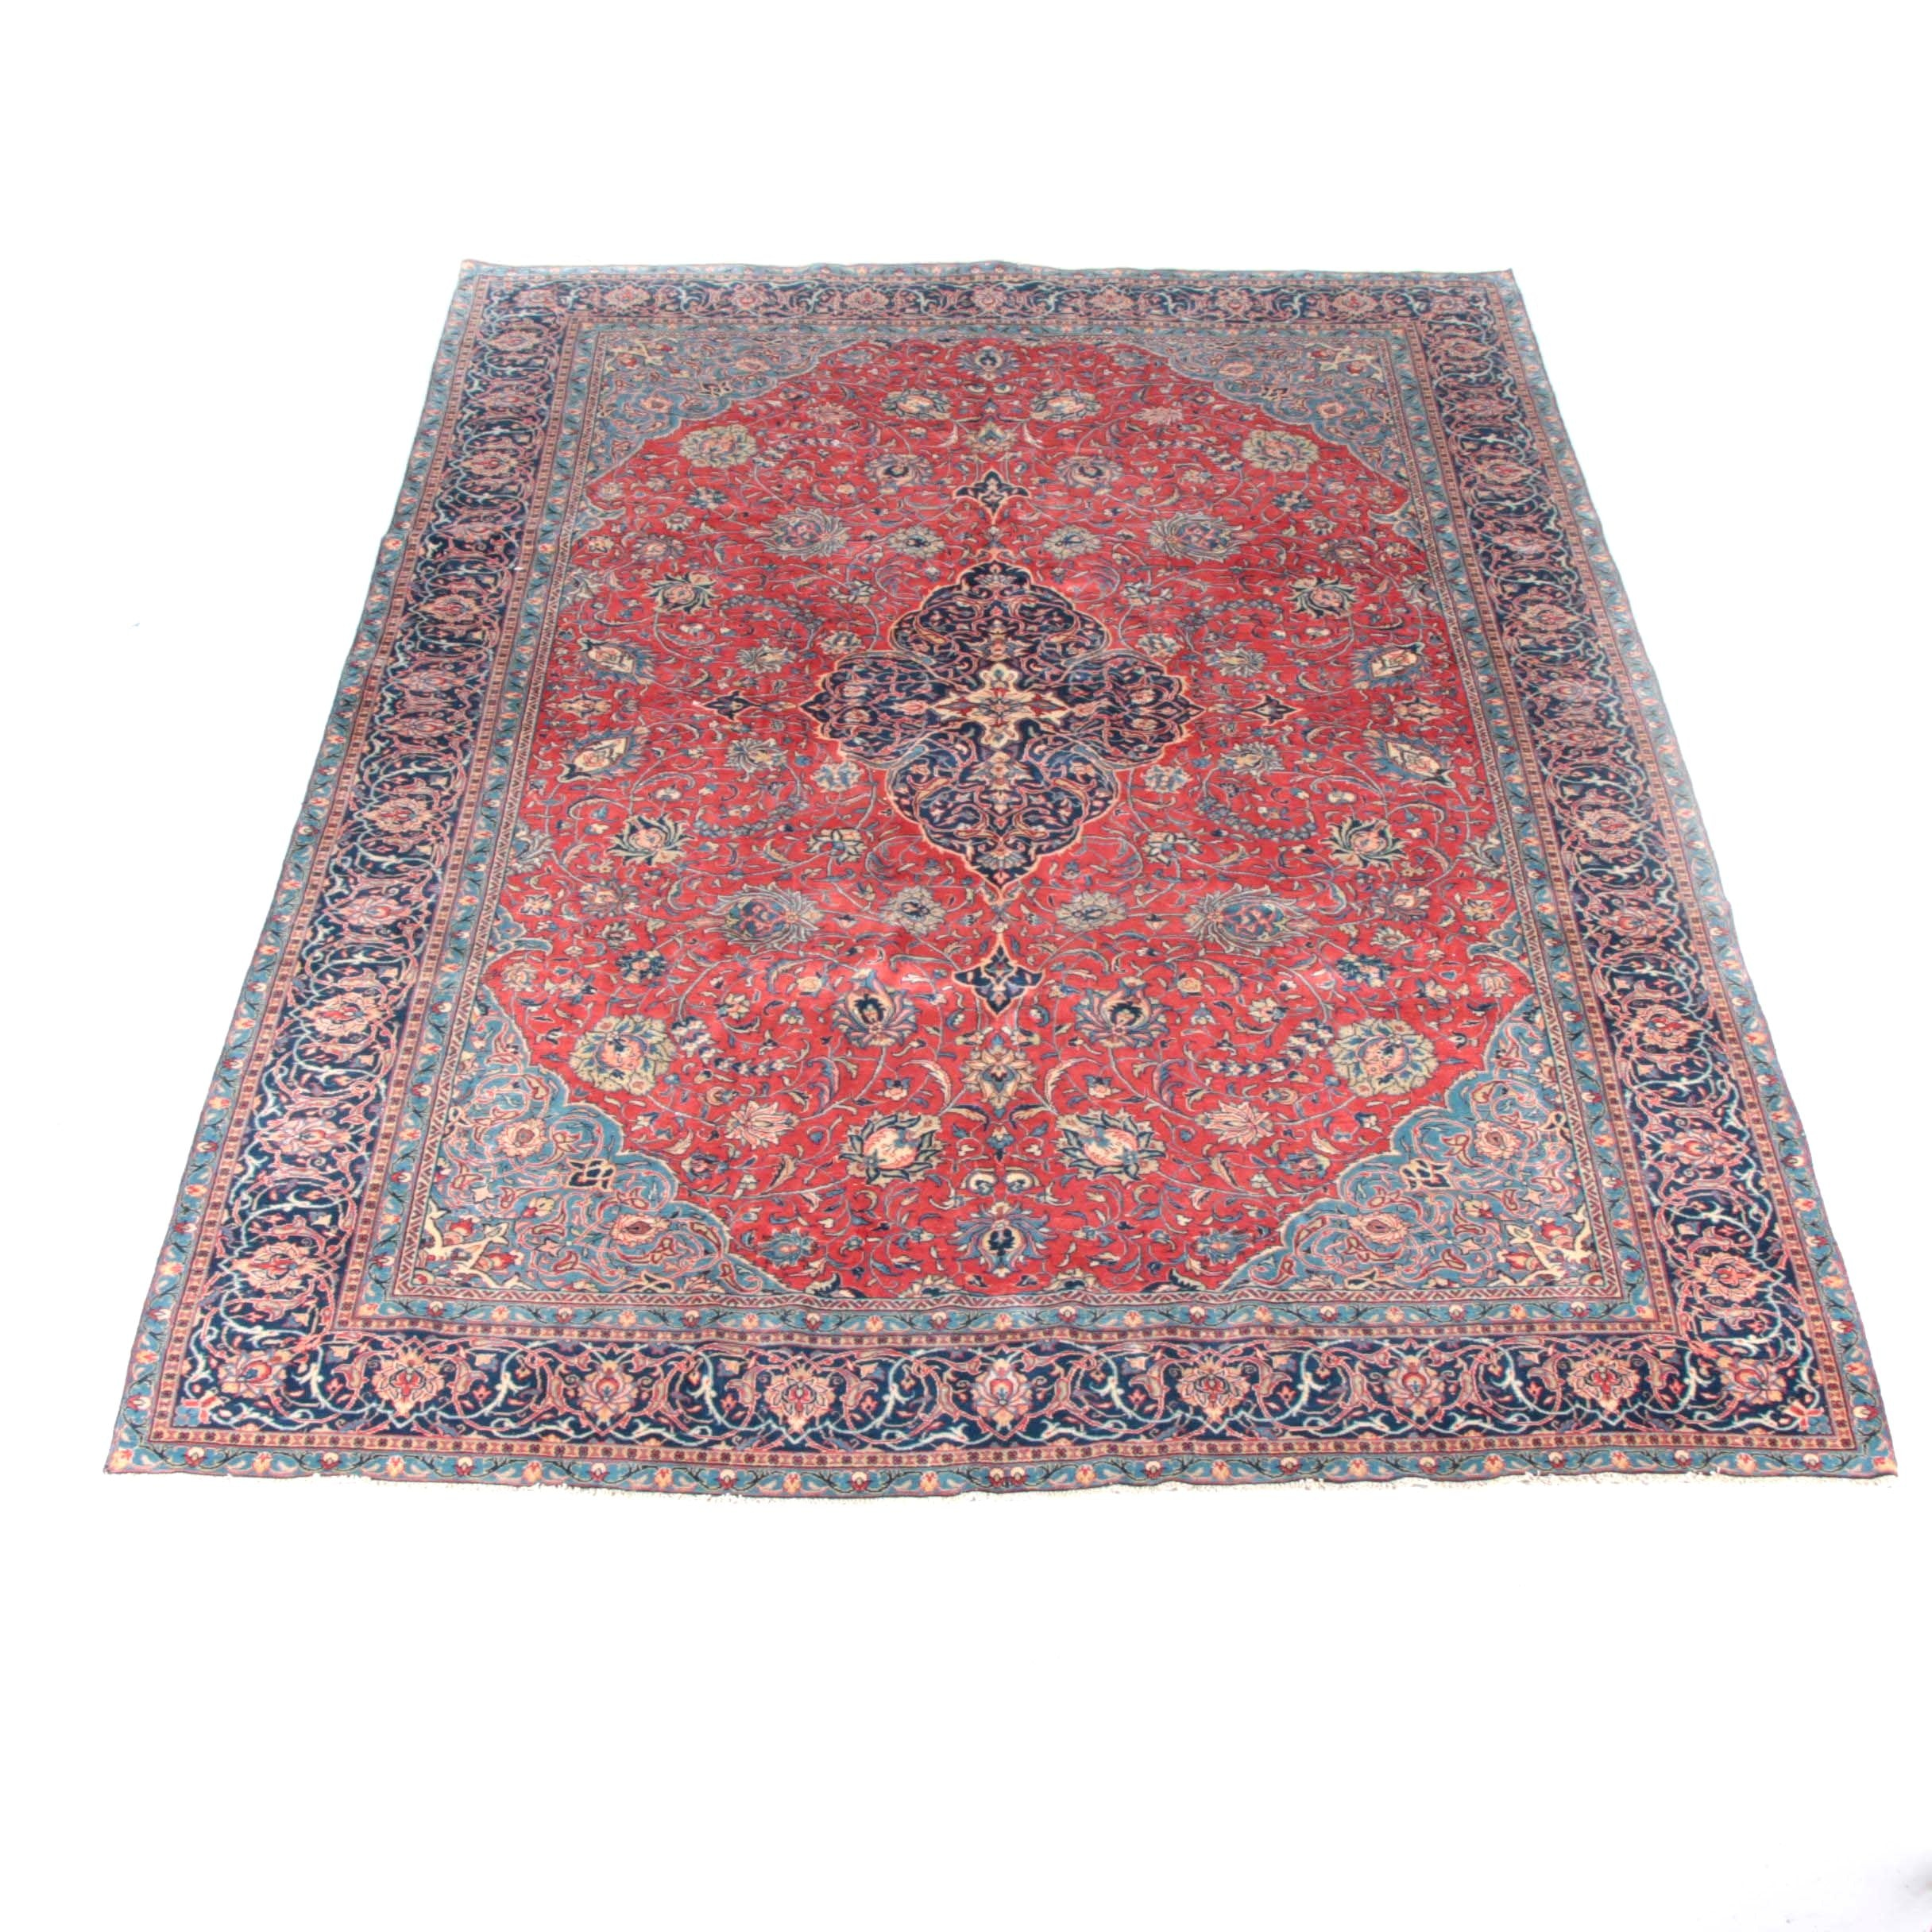 Handwoven Semi-Antique Persian Lilihan Sarouk Wool Area Rug